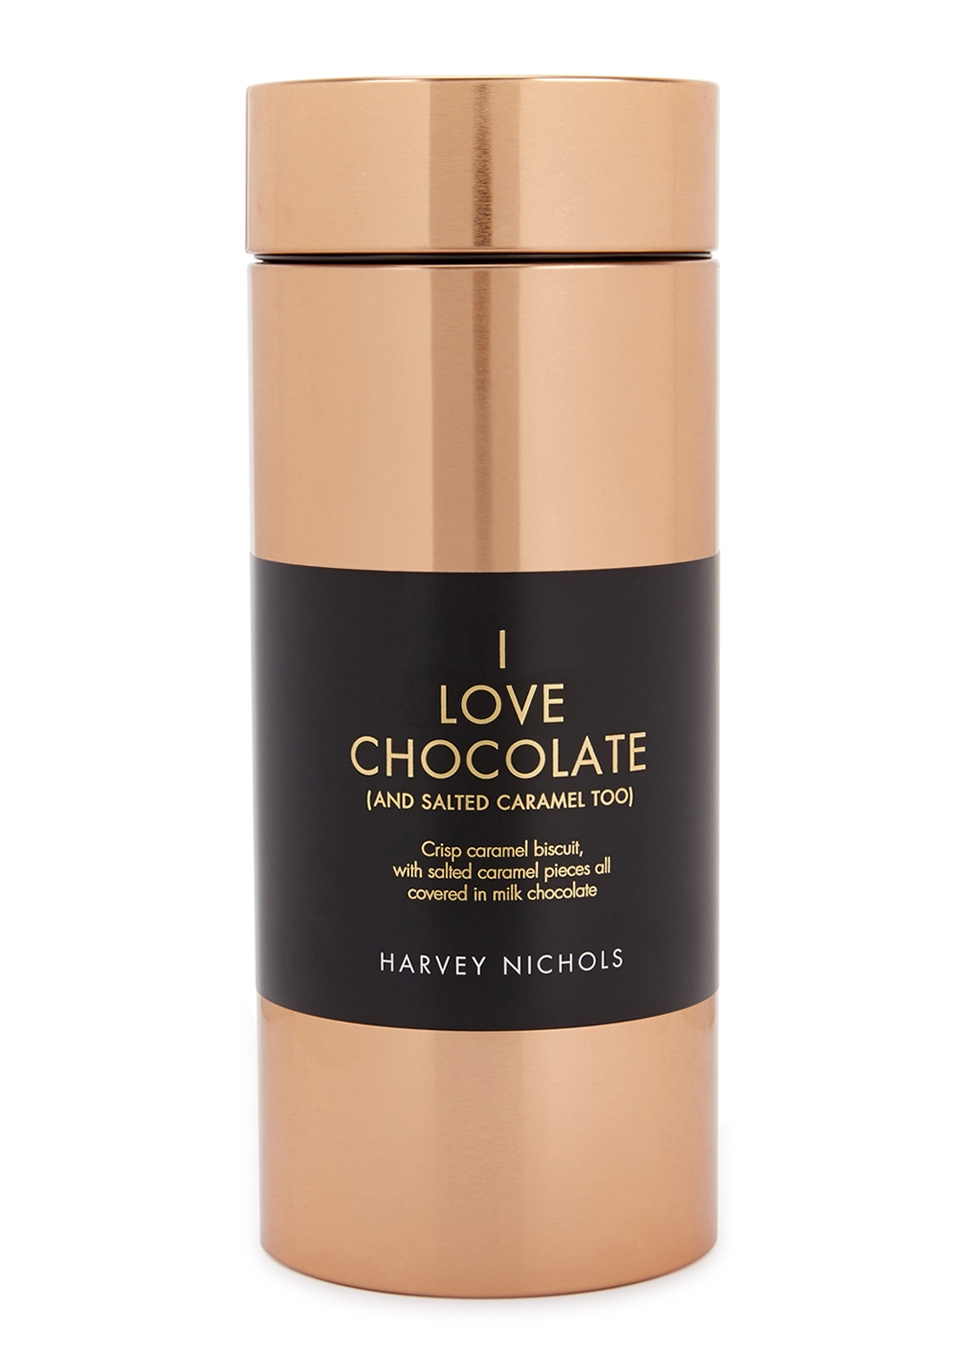 harvey nichols i love chocolate biscuits copper tin 300g rh harveynichols com